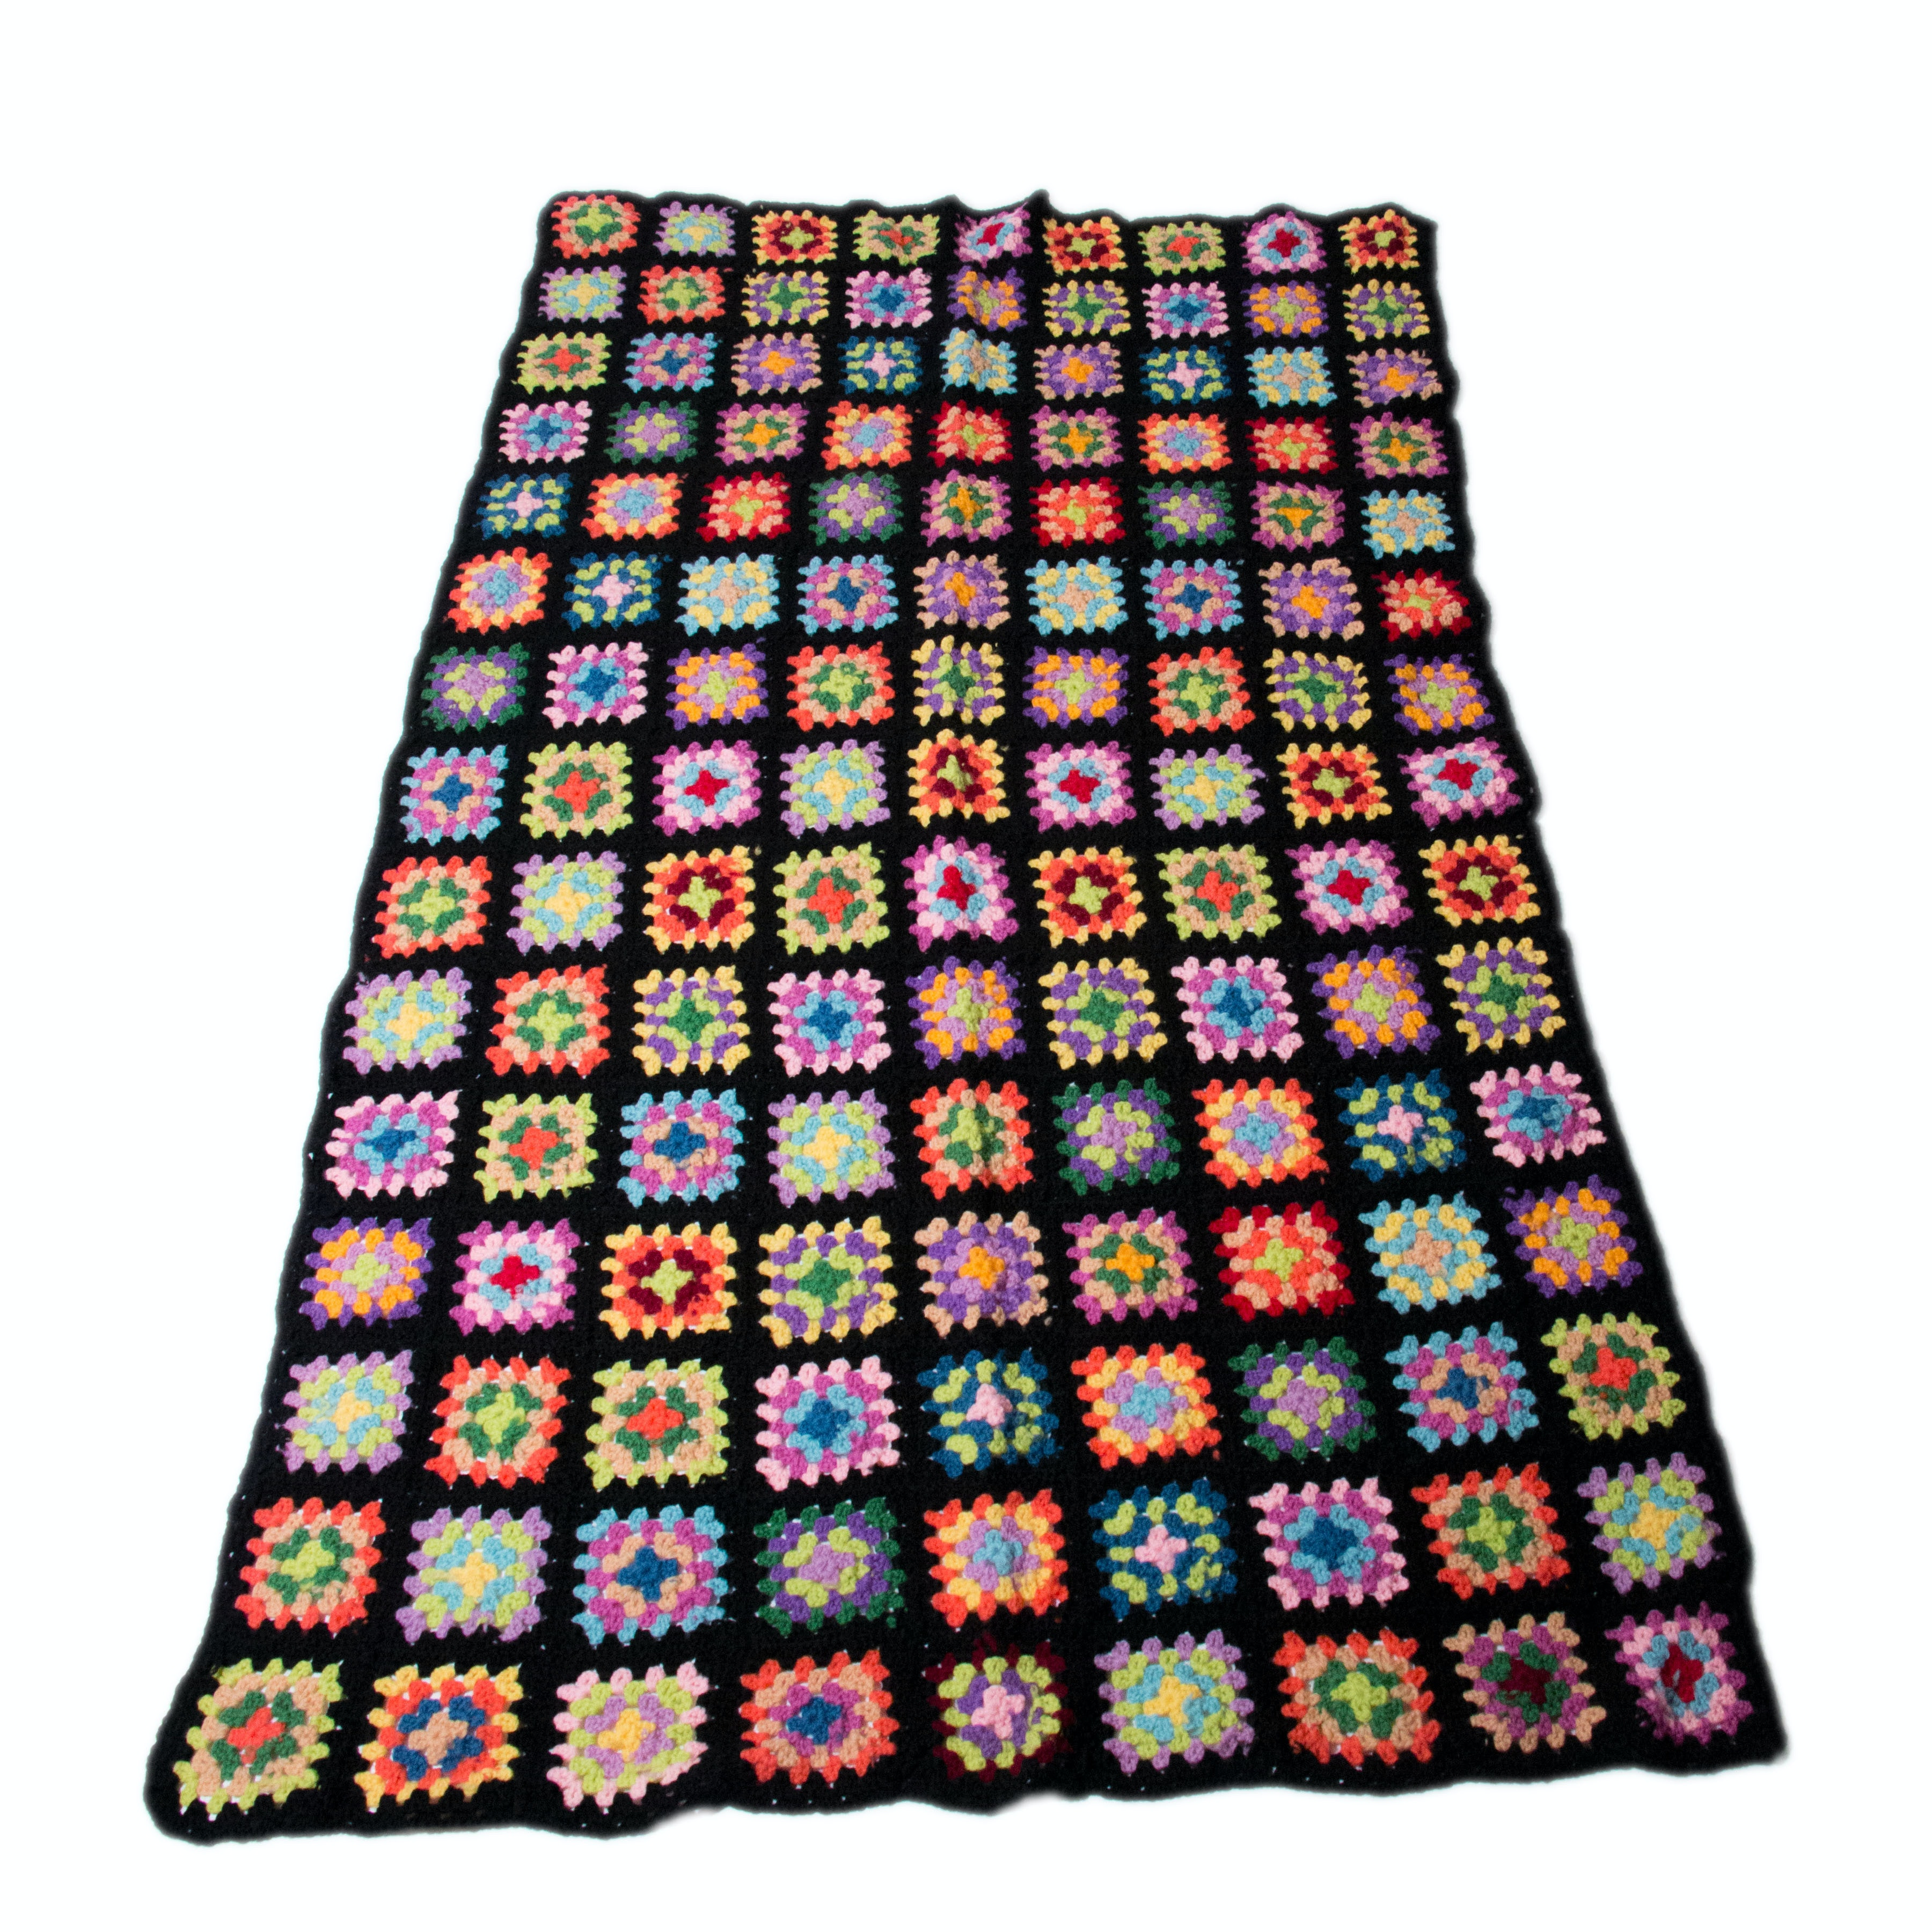 "Hand-Crocheted ""Granny Square"" Afghan"